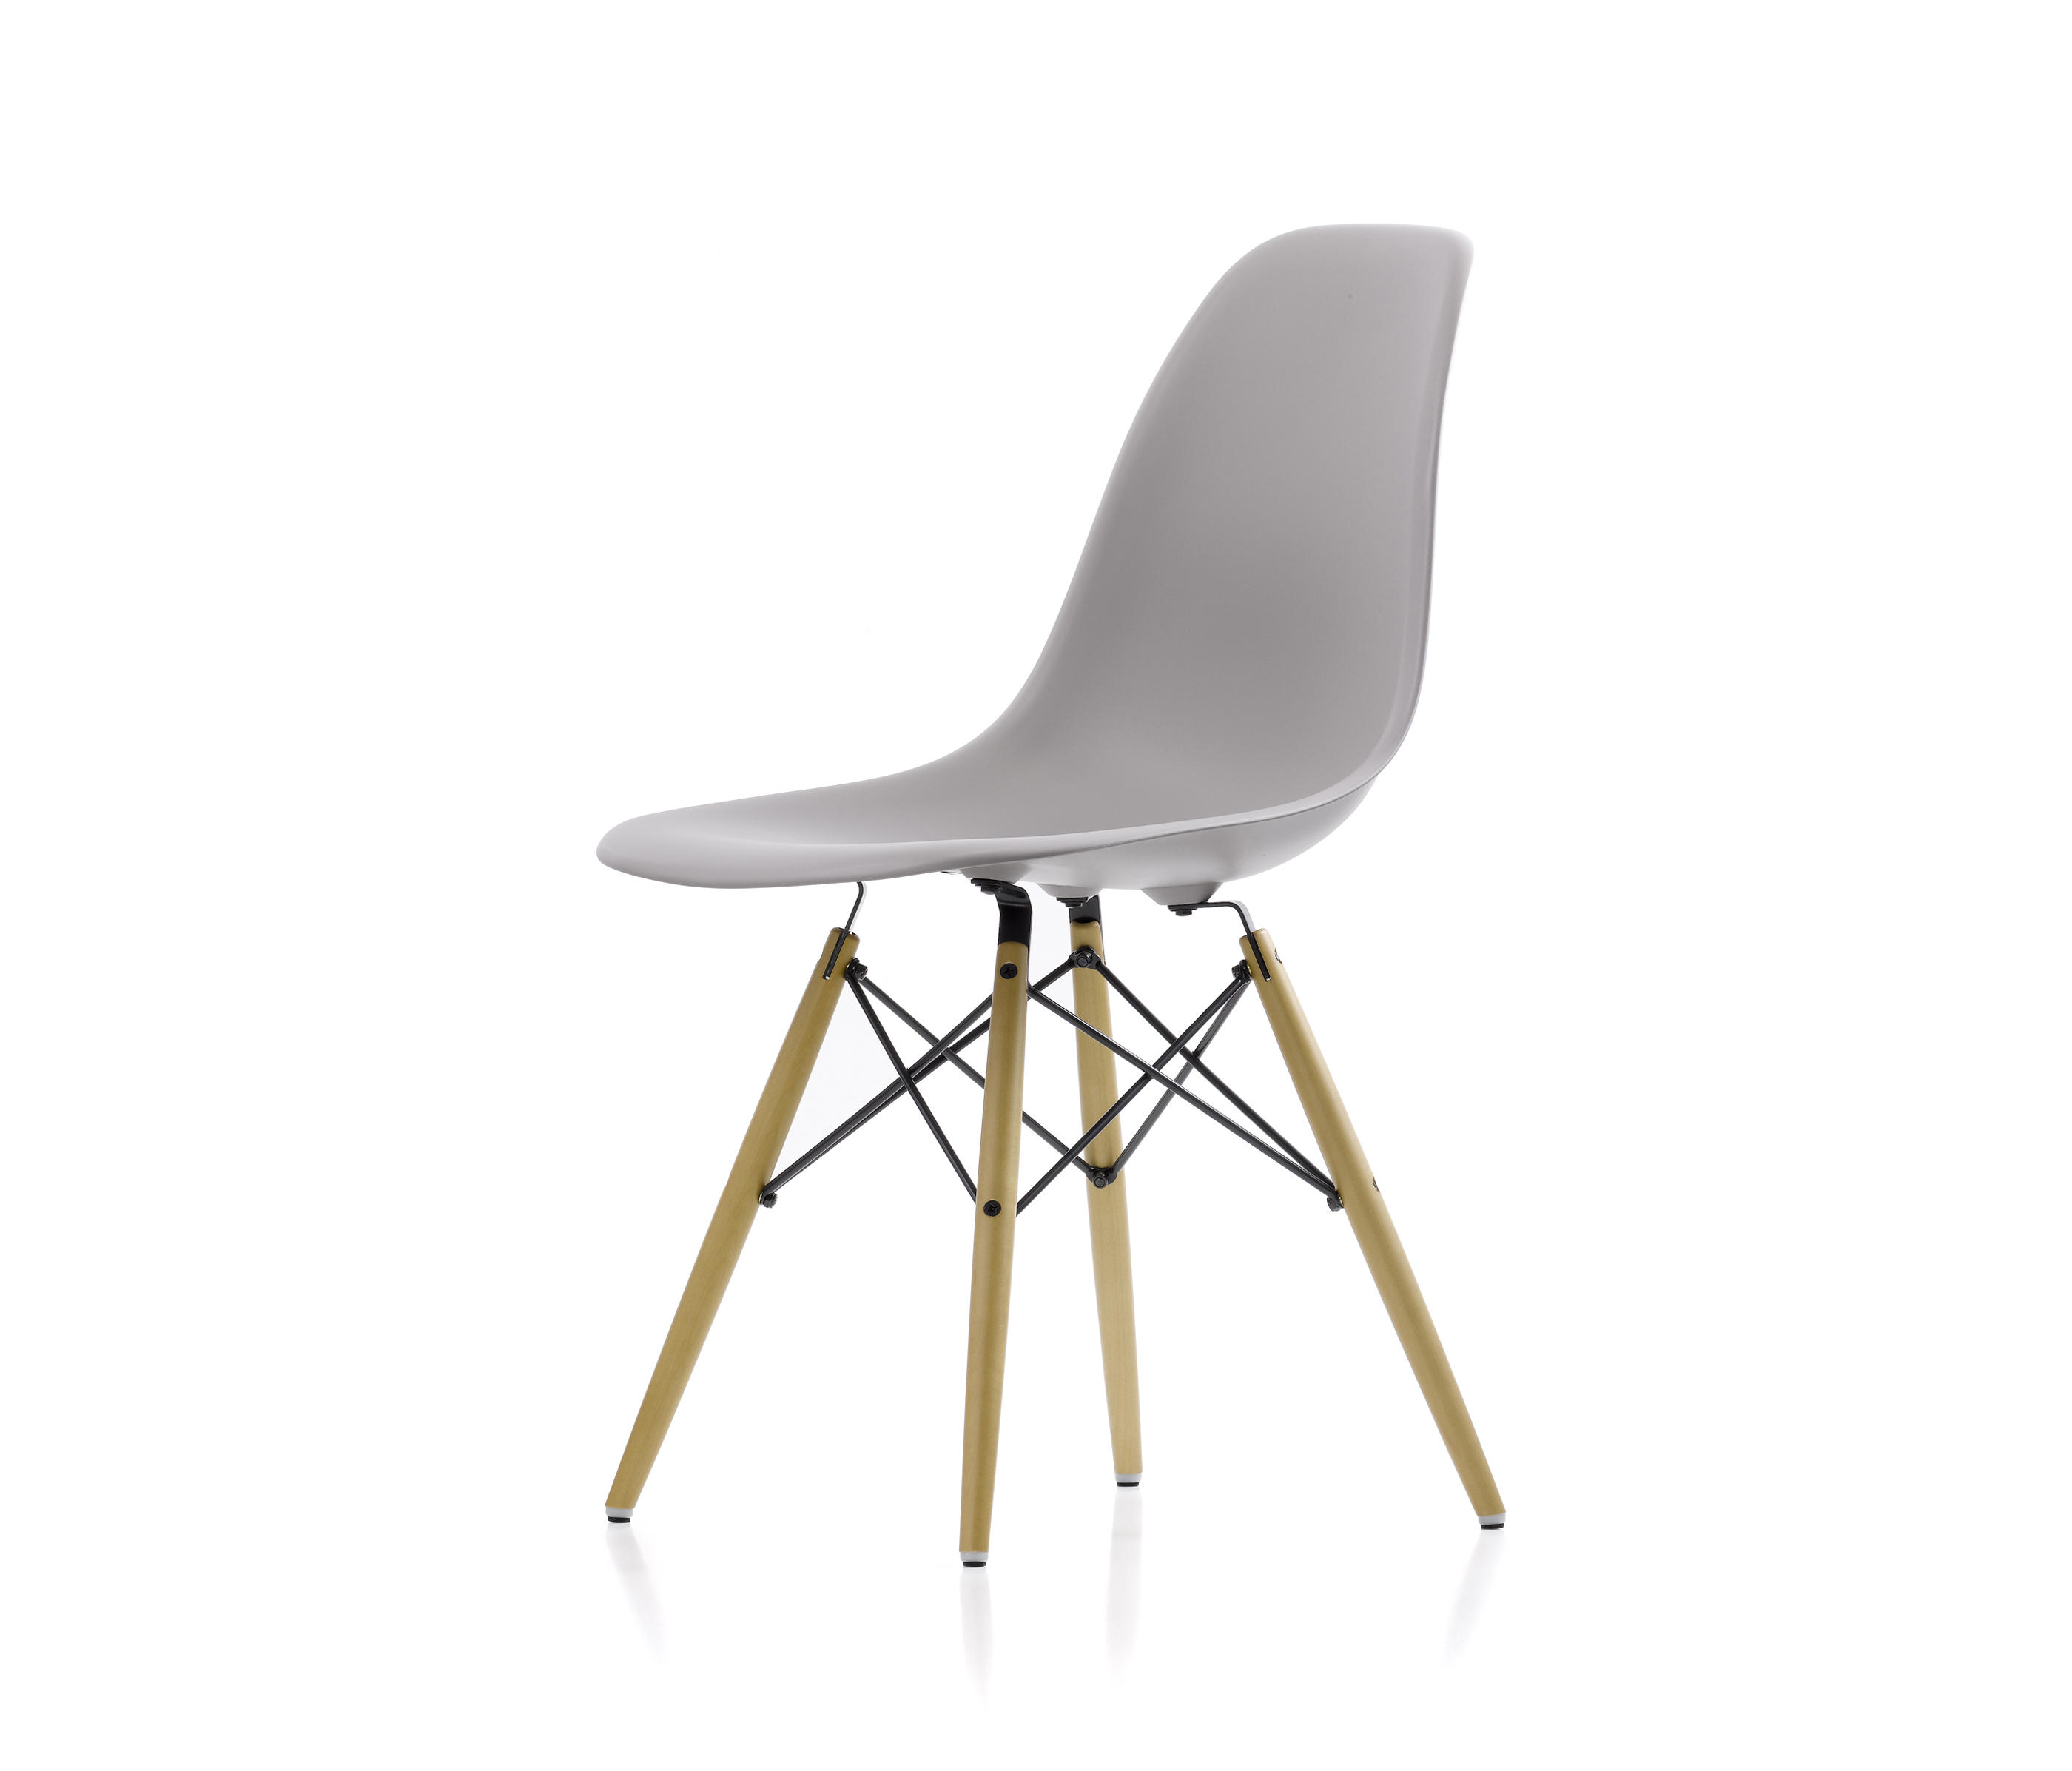 eames plastic side chair dsw multipurpose chairs from vitra architonic. Black Bedroom Furniture Sets. Home Design Ideas